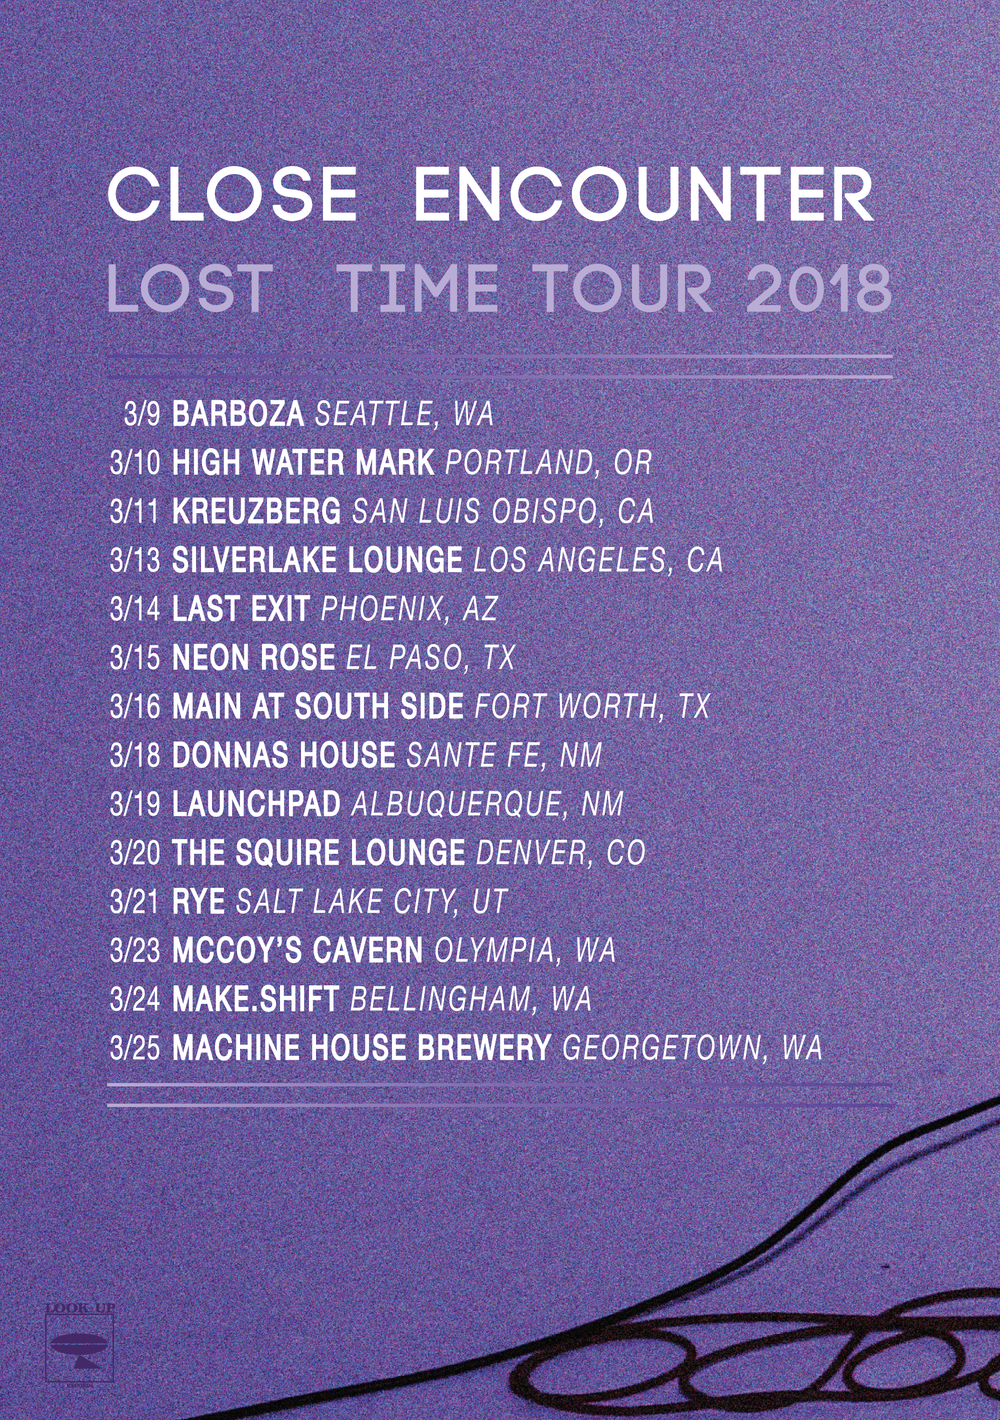 Lost-Time-Tour-Final-Flyer.png